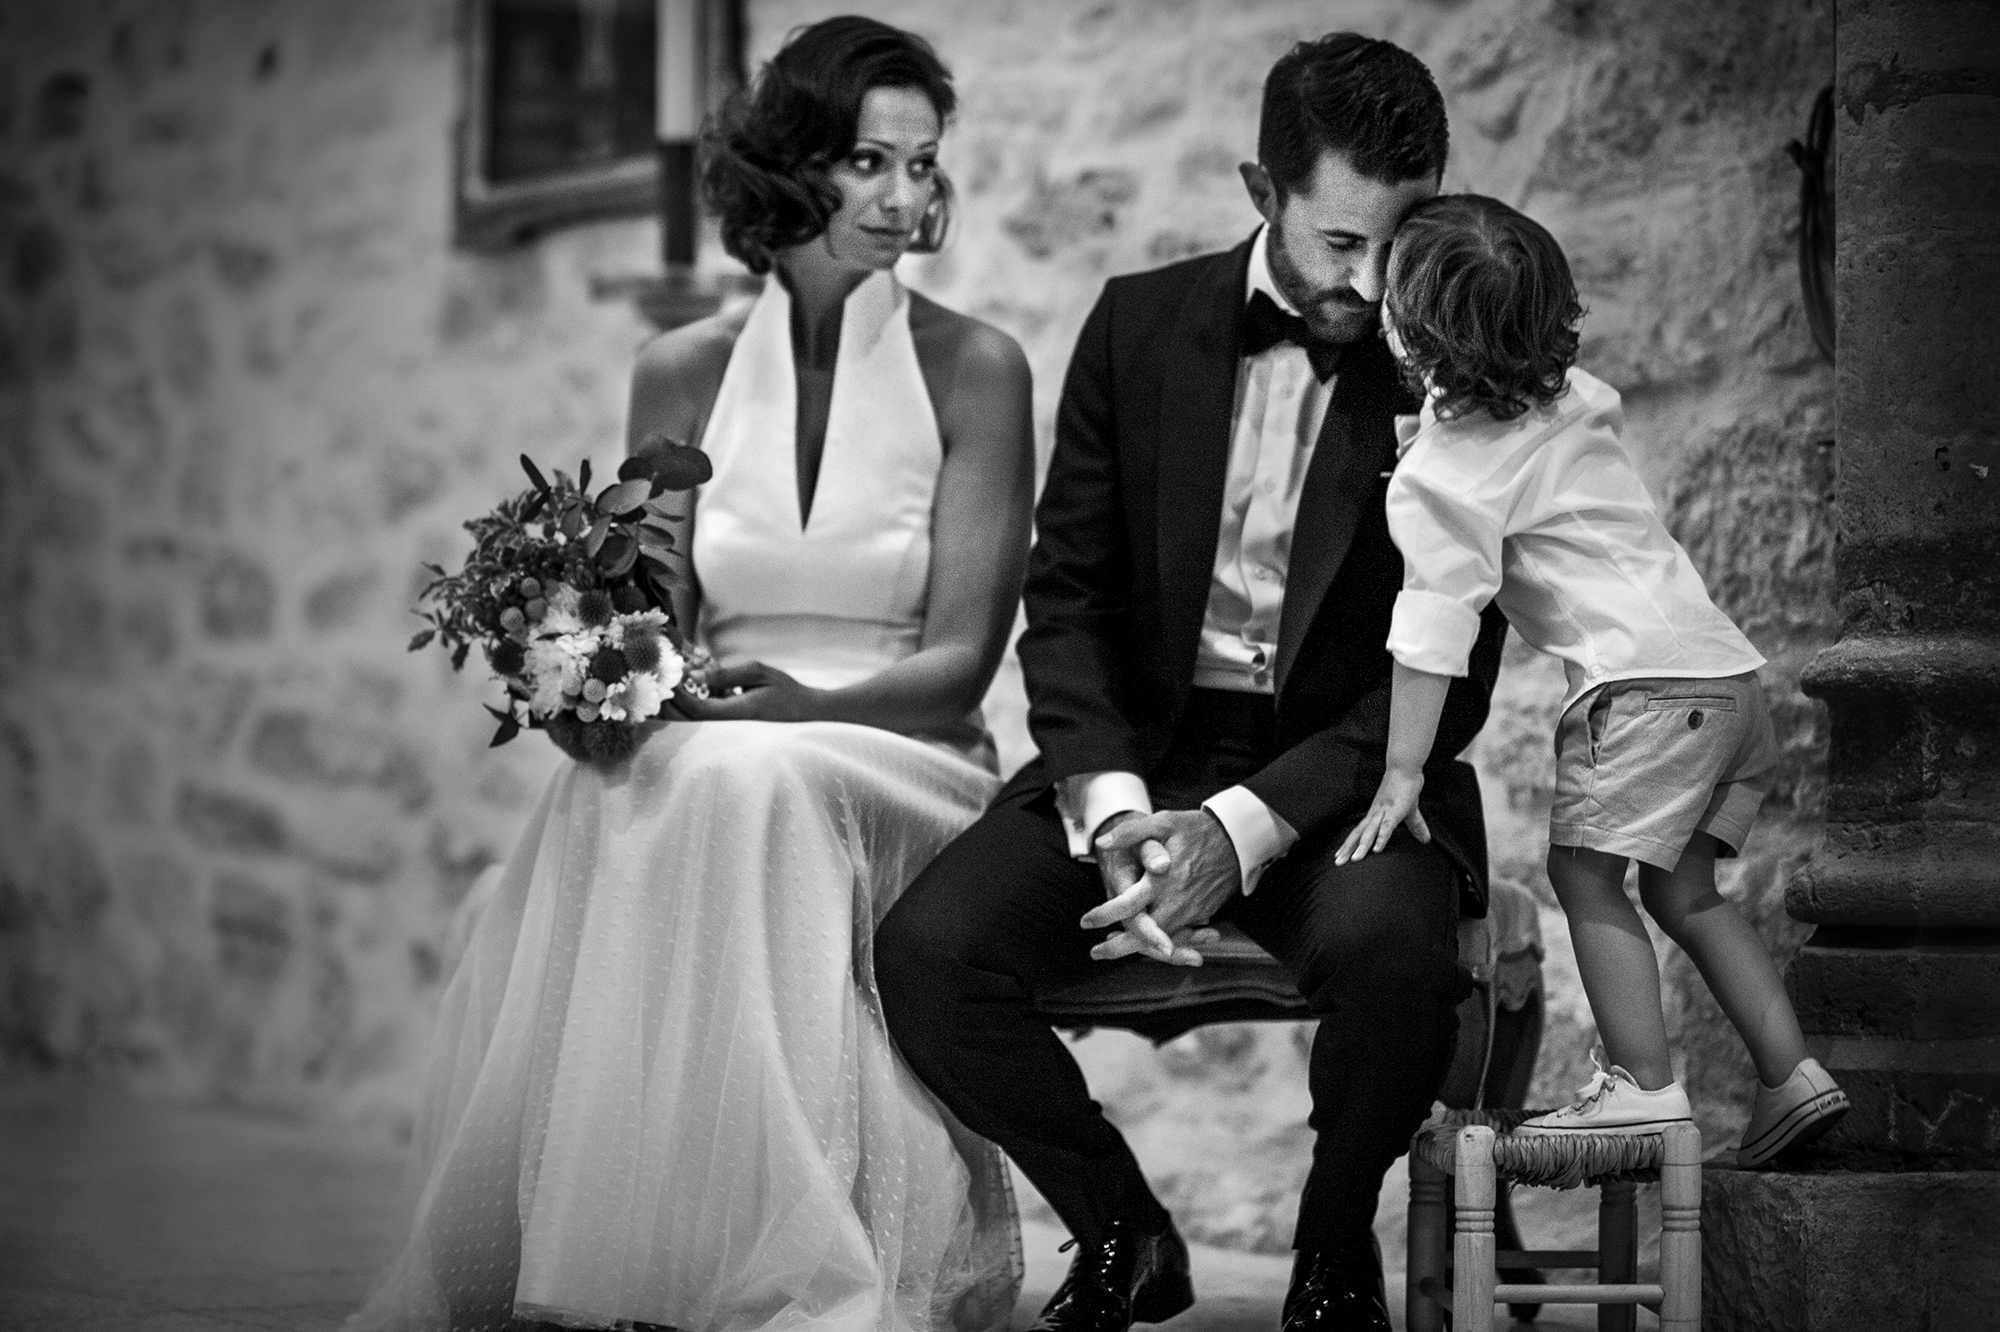 Young son kissing groom during ceremony - photo by Victor Lax